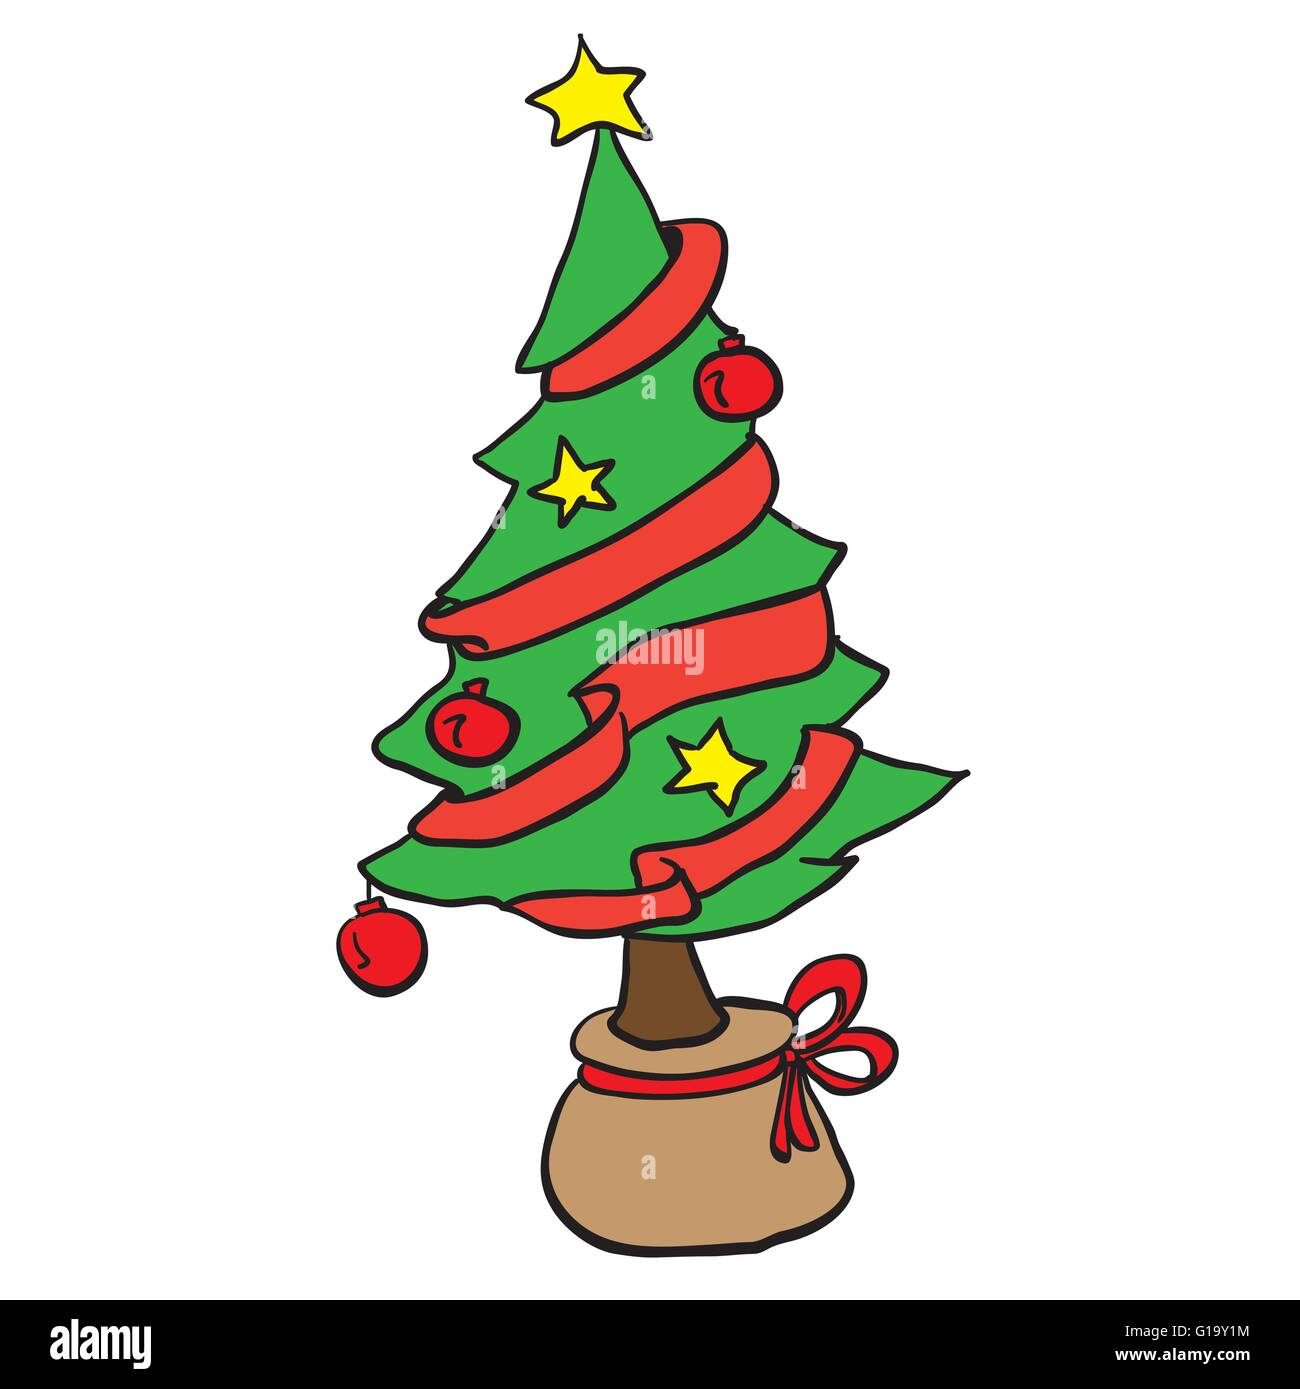 simple christmas tree cartoon stock vector image art alamy https www alamy com stock photo simple christmas tree cartoon 104095648 html